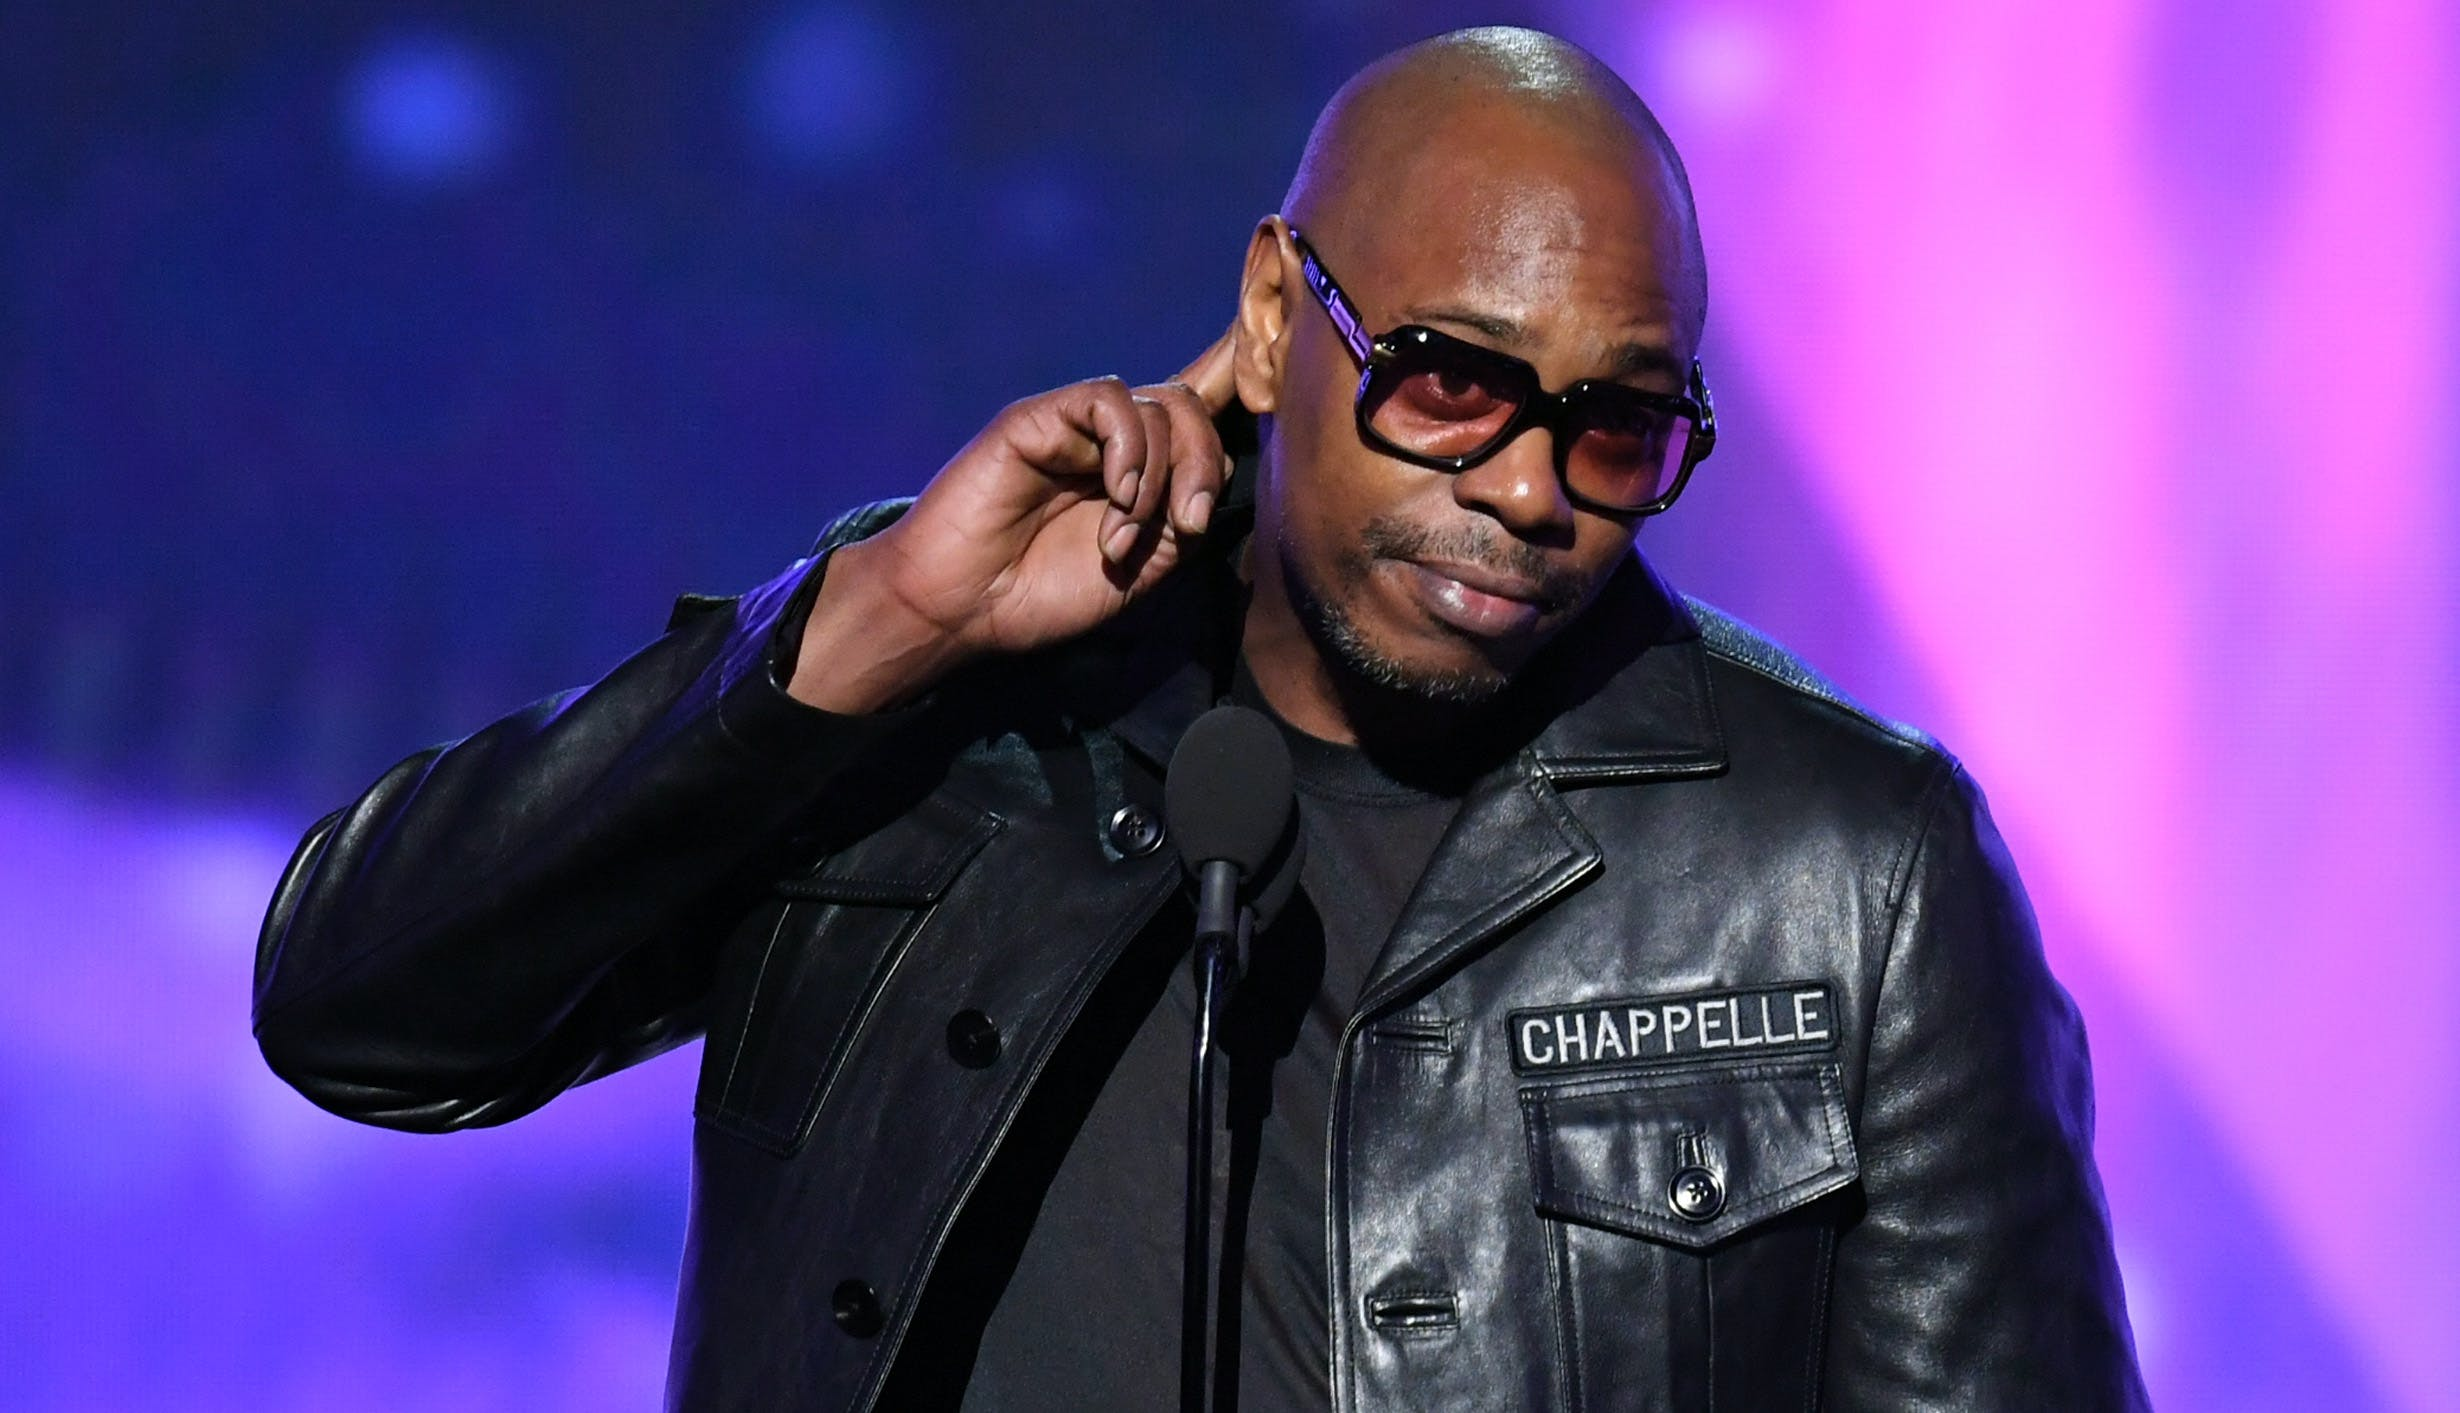 Dave Chappelle grammy awards